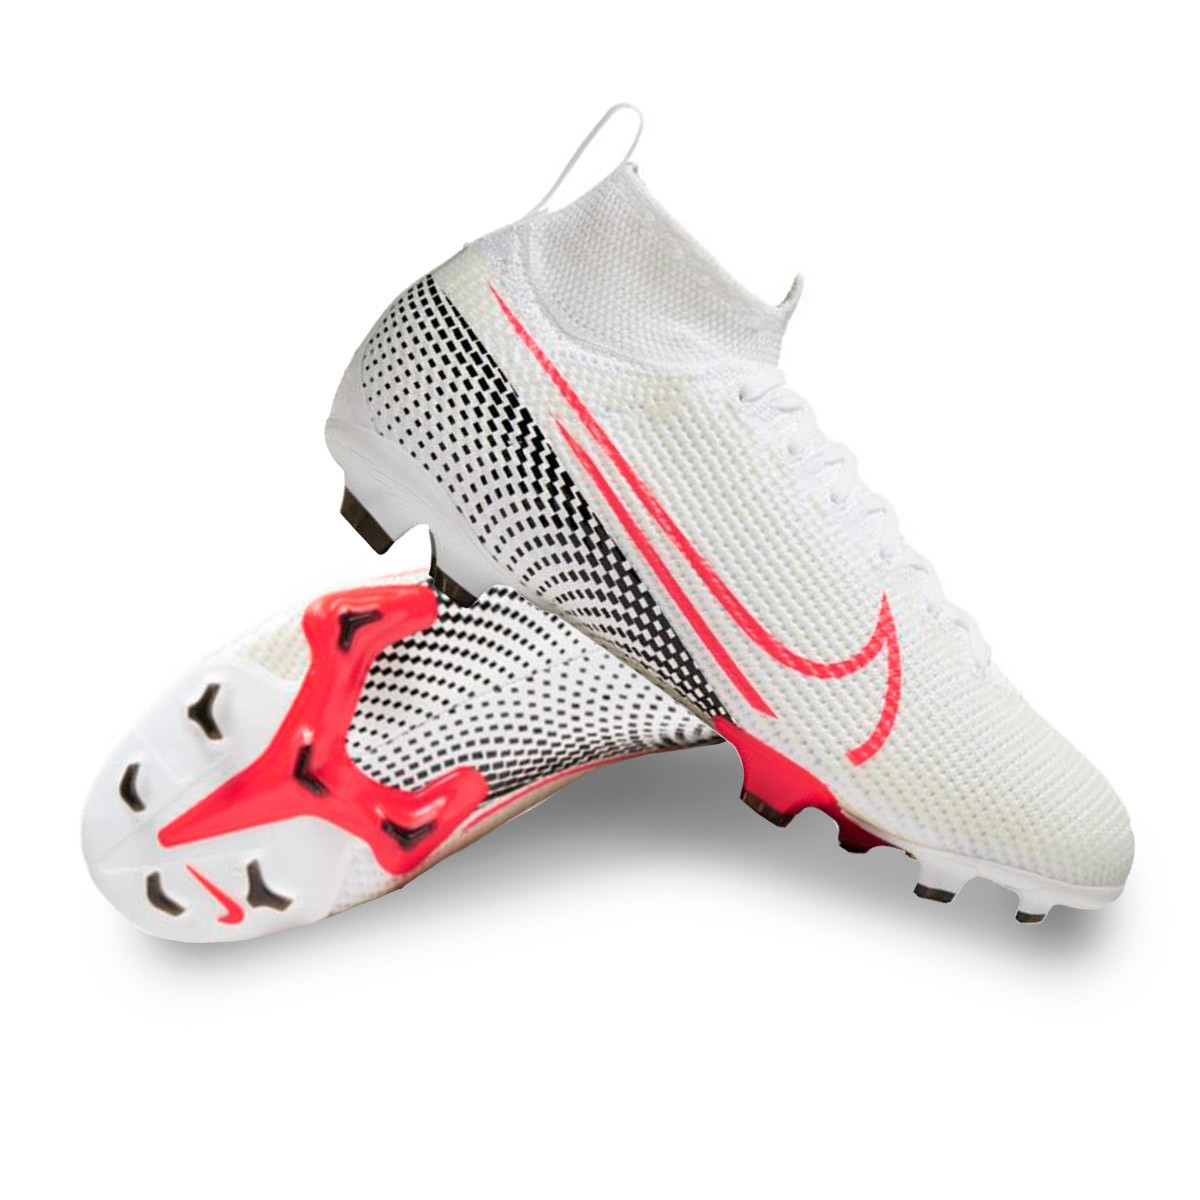 contar hasta neumático Ennegrecer  Football Boots Nike Kids Mercurial Superfly VII Elite FG White ...